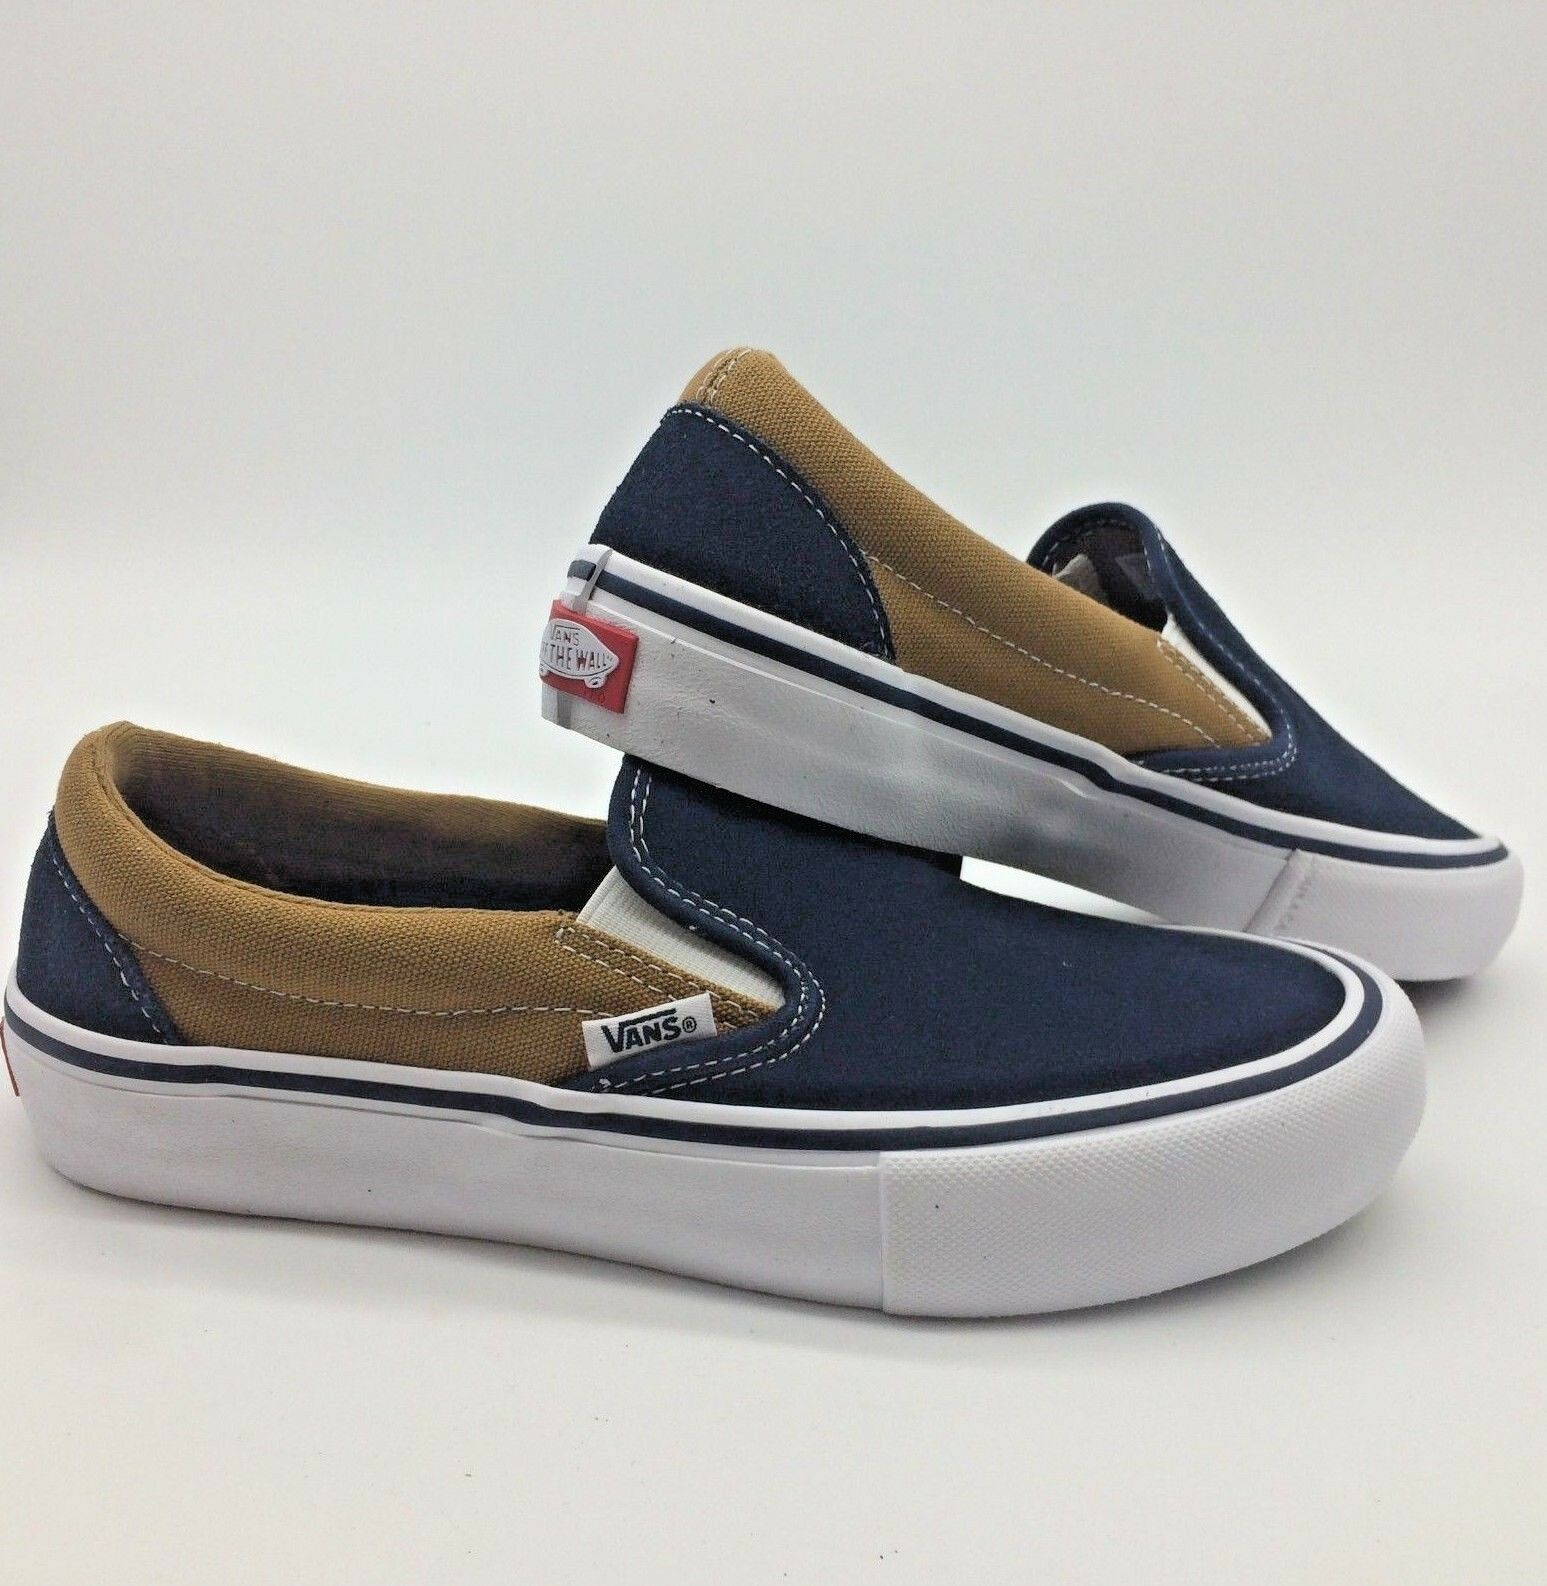 Vans Men Women's shoes Slip on Pro Dress''-- Dress bluees Medal Bronze